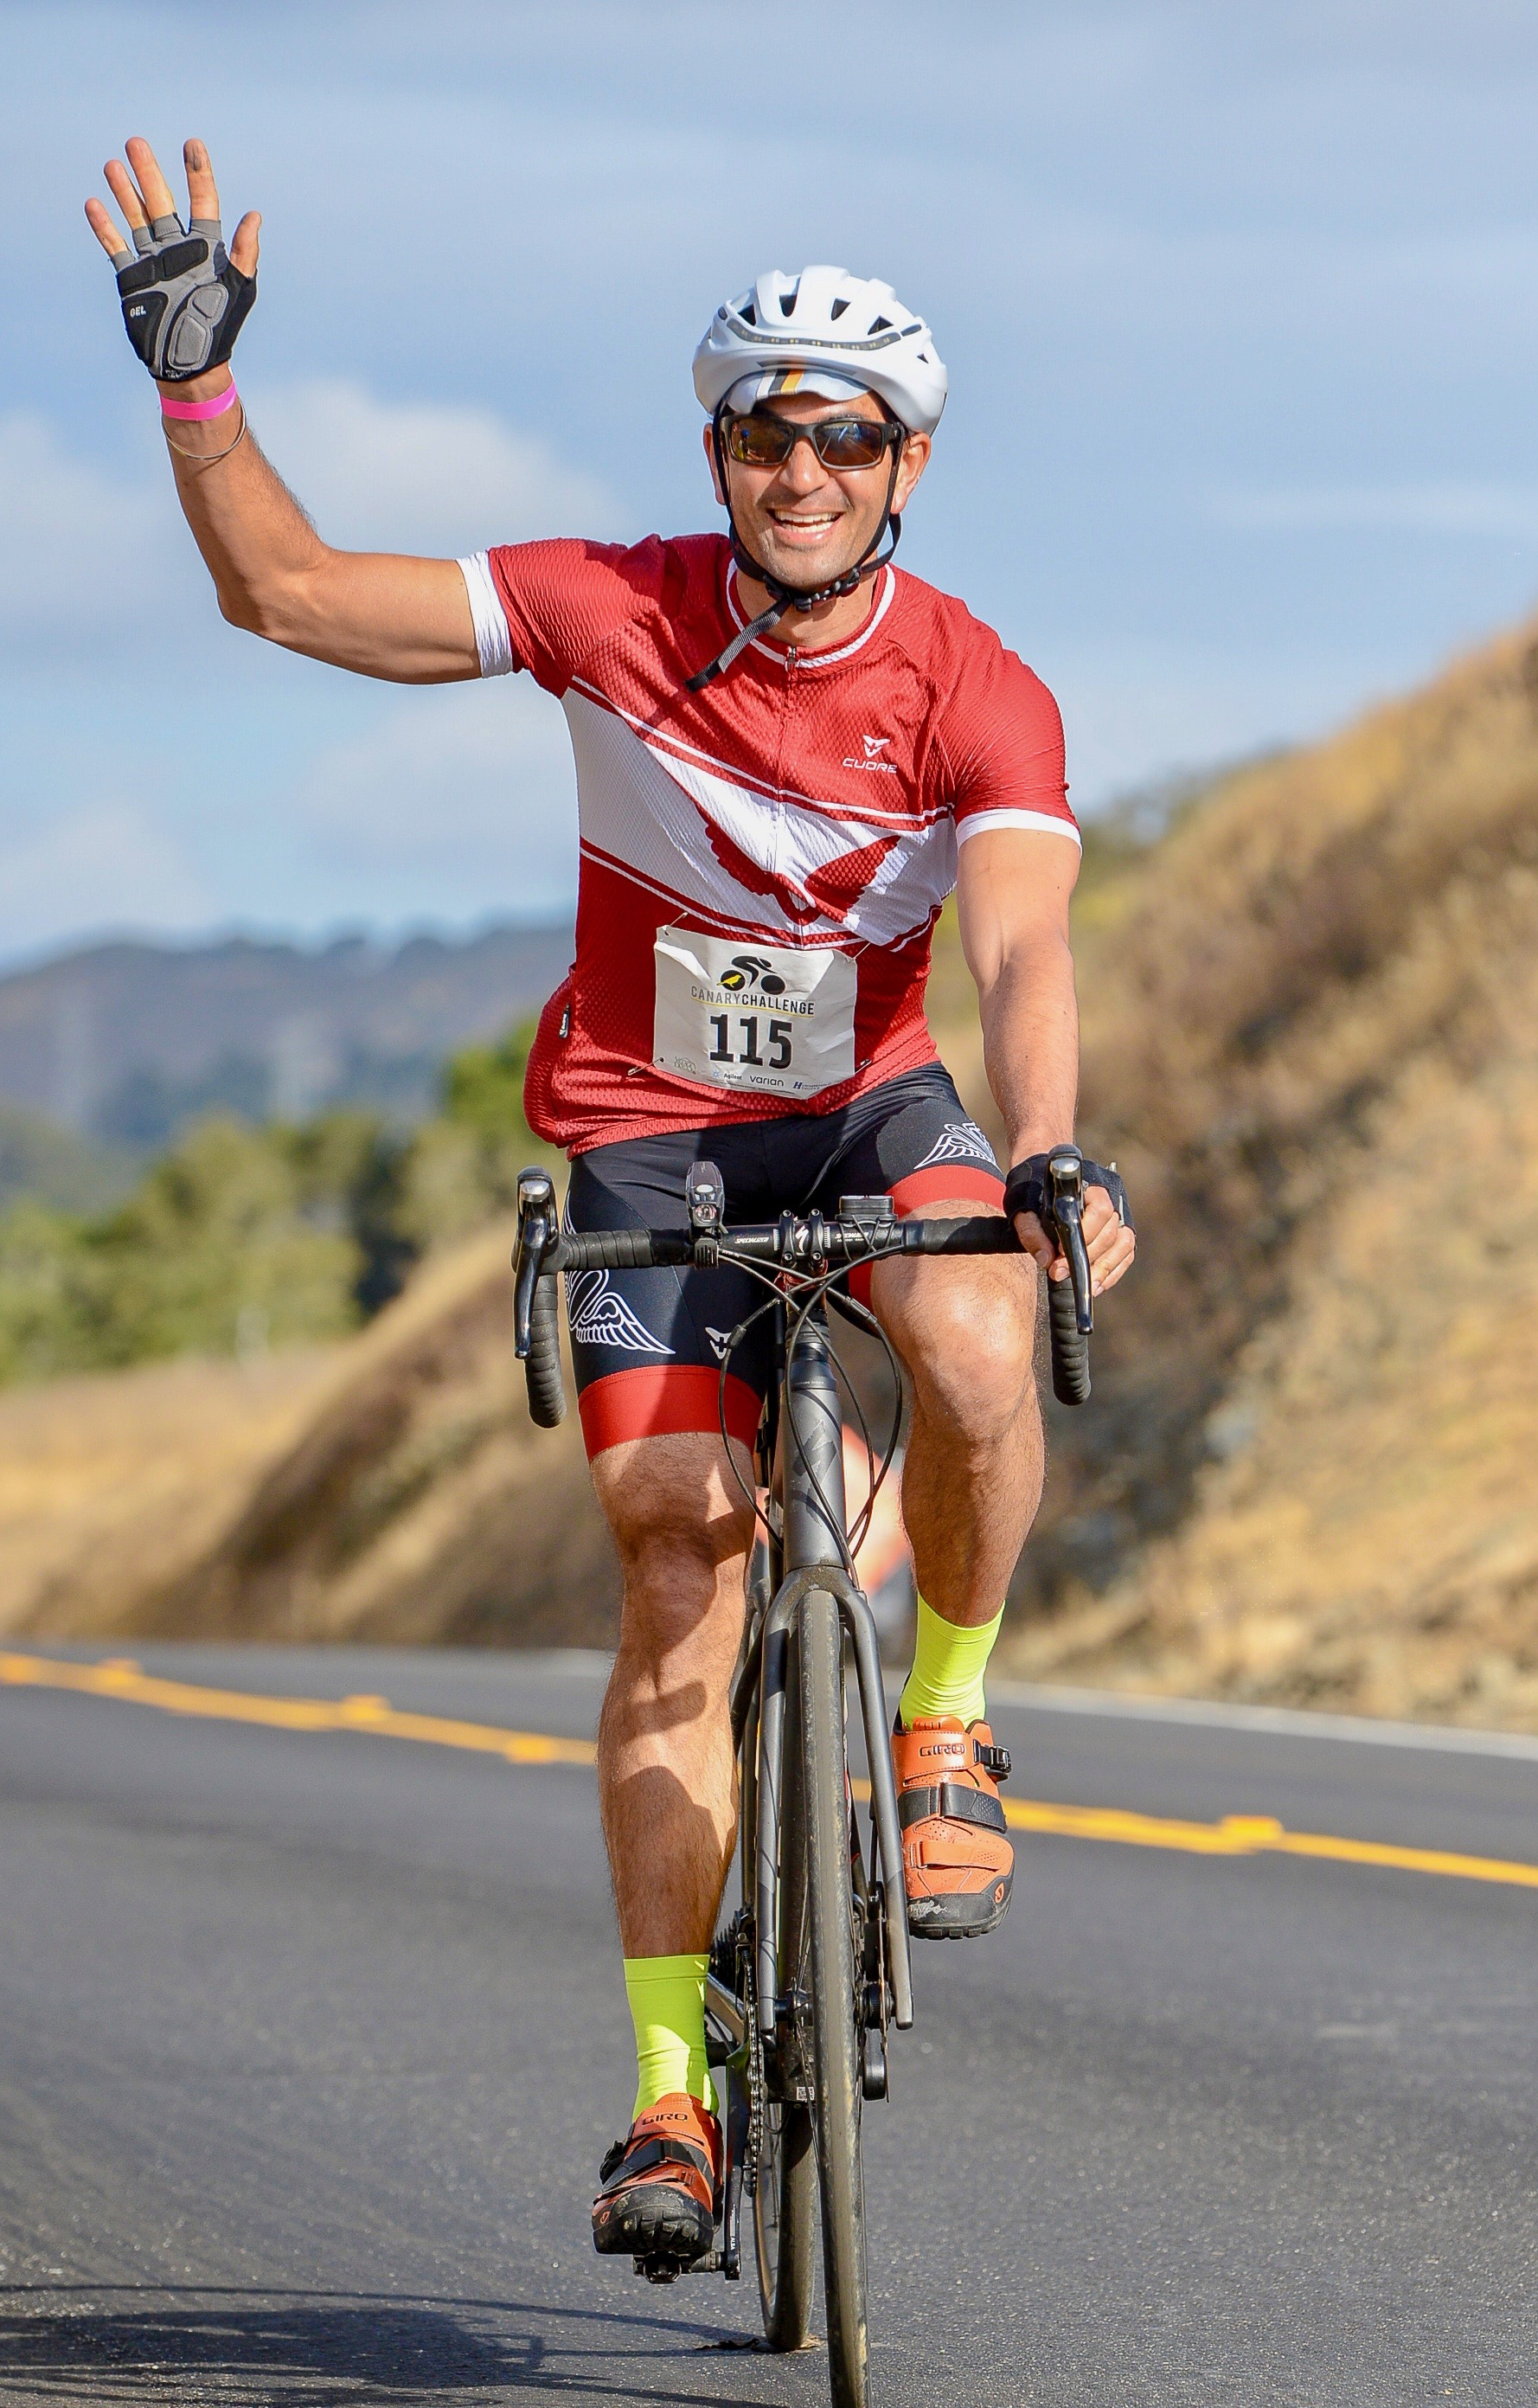 Dr. A cycling in the 100 mile Canary Challenge